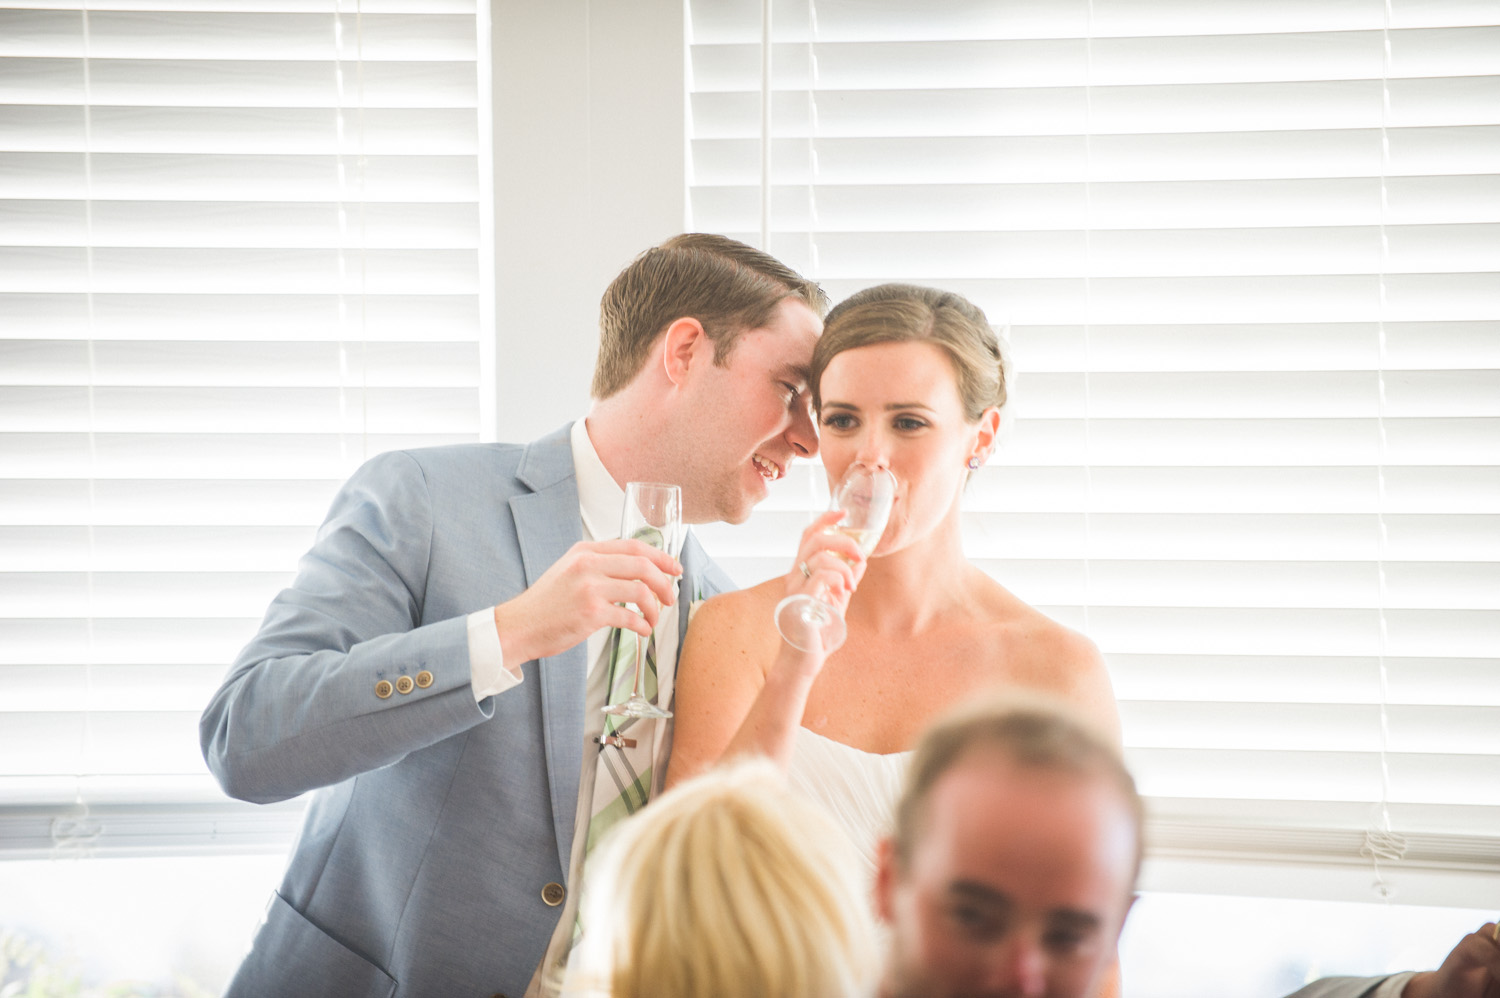 stone-harbor-wedding-photography-1 (45).jpg